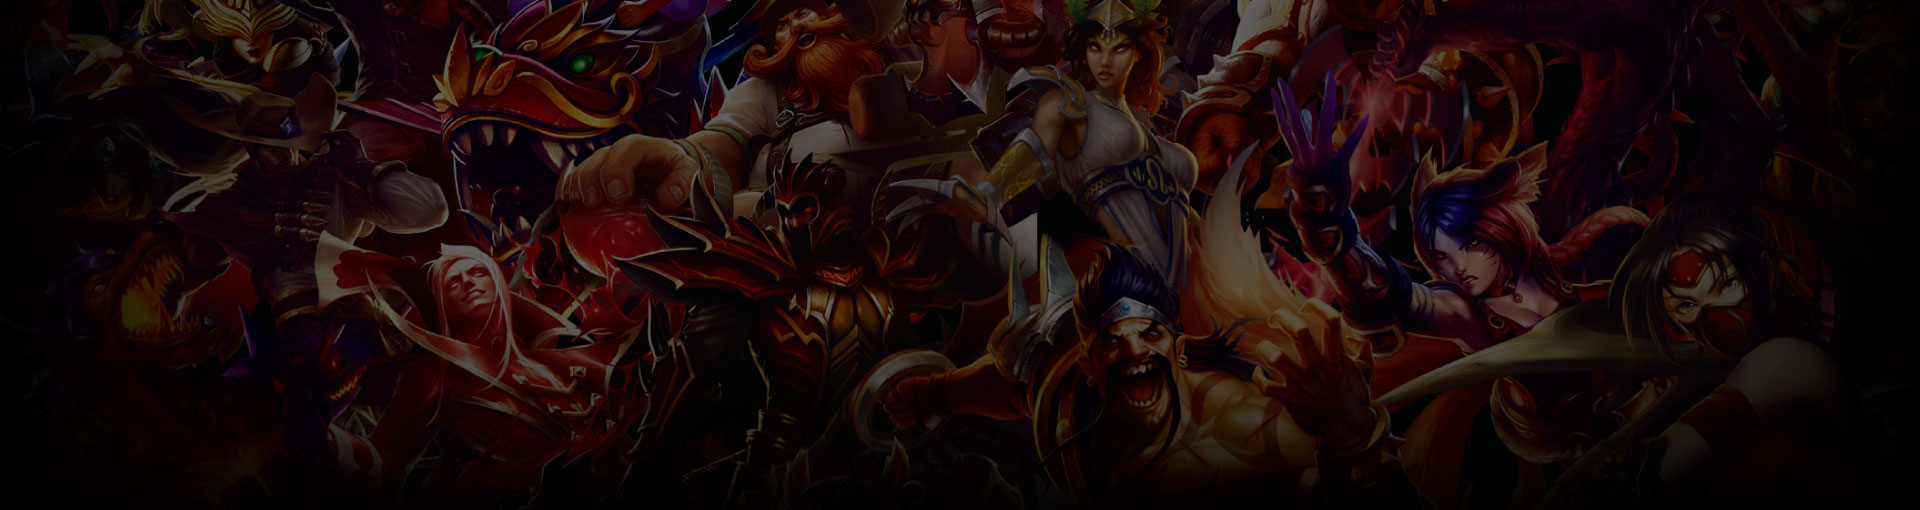 League of Legends Background